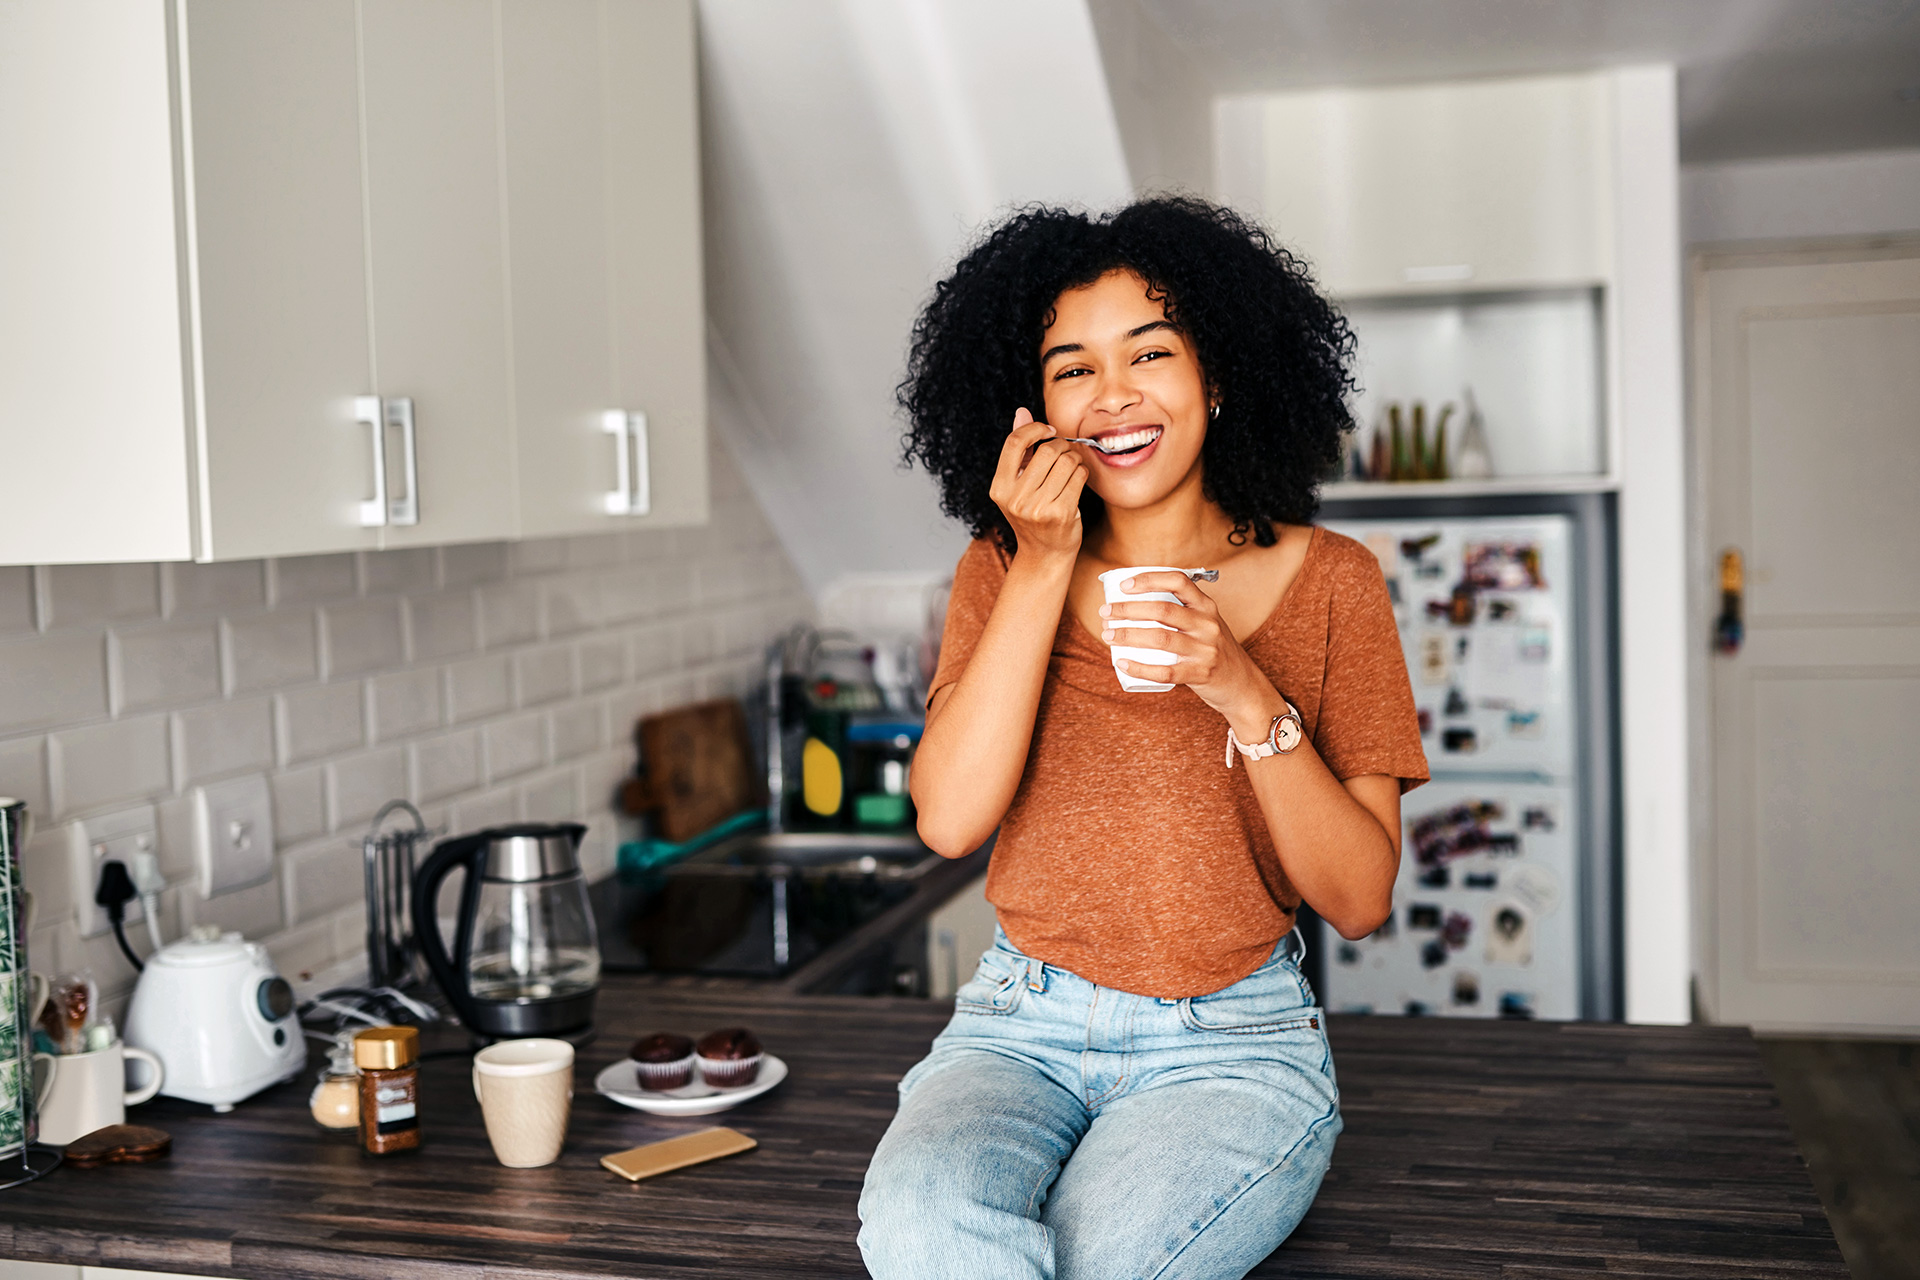 Young woman sitting on a counter eating